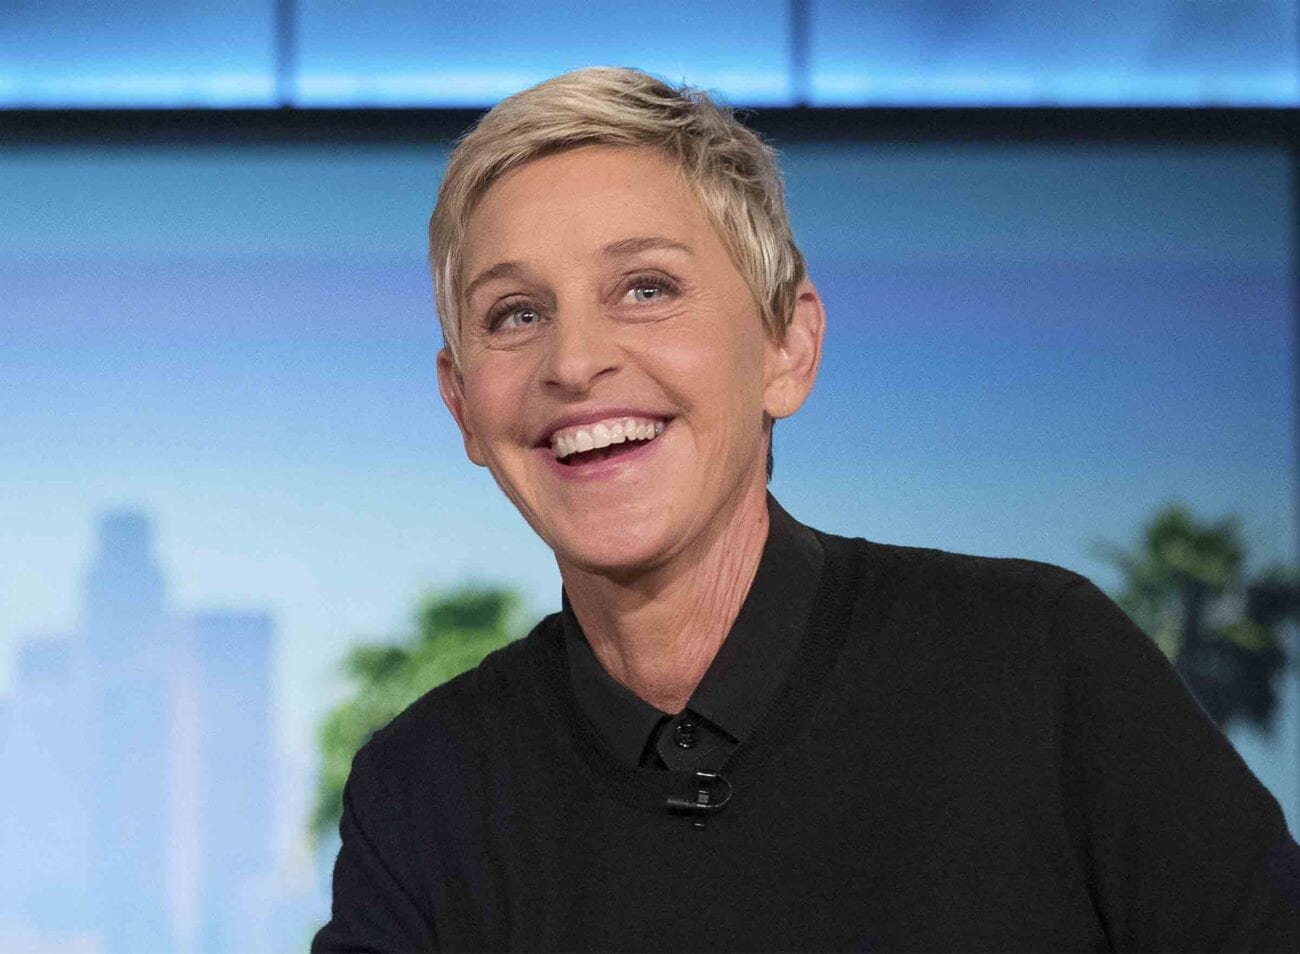 Ellen DeGeneres's Instagram page is full of some bizarre content – that's where The Ellen DeGeneres Show posts clips of interviews, promos, and weird internet videos.